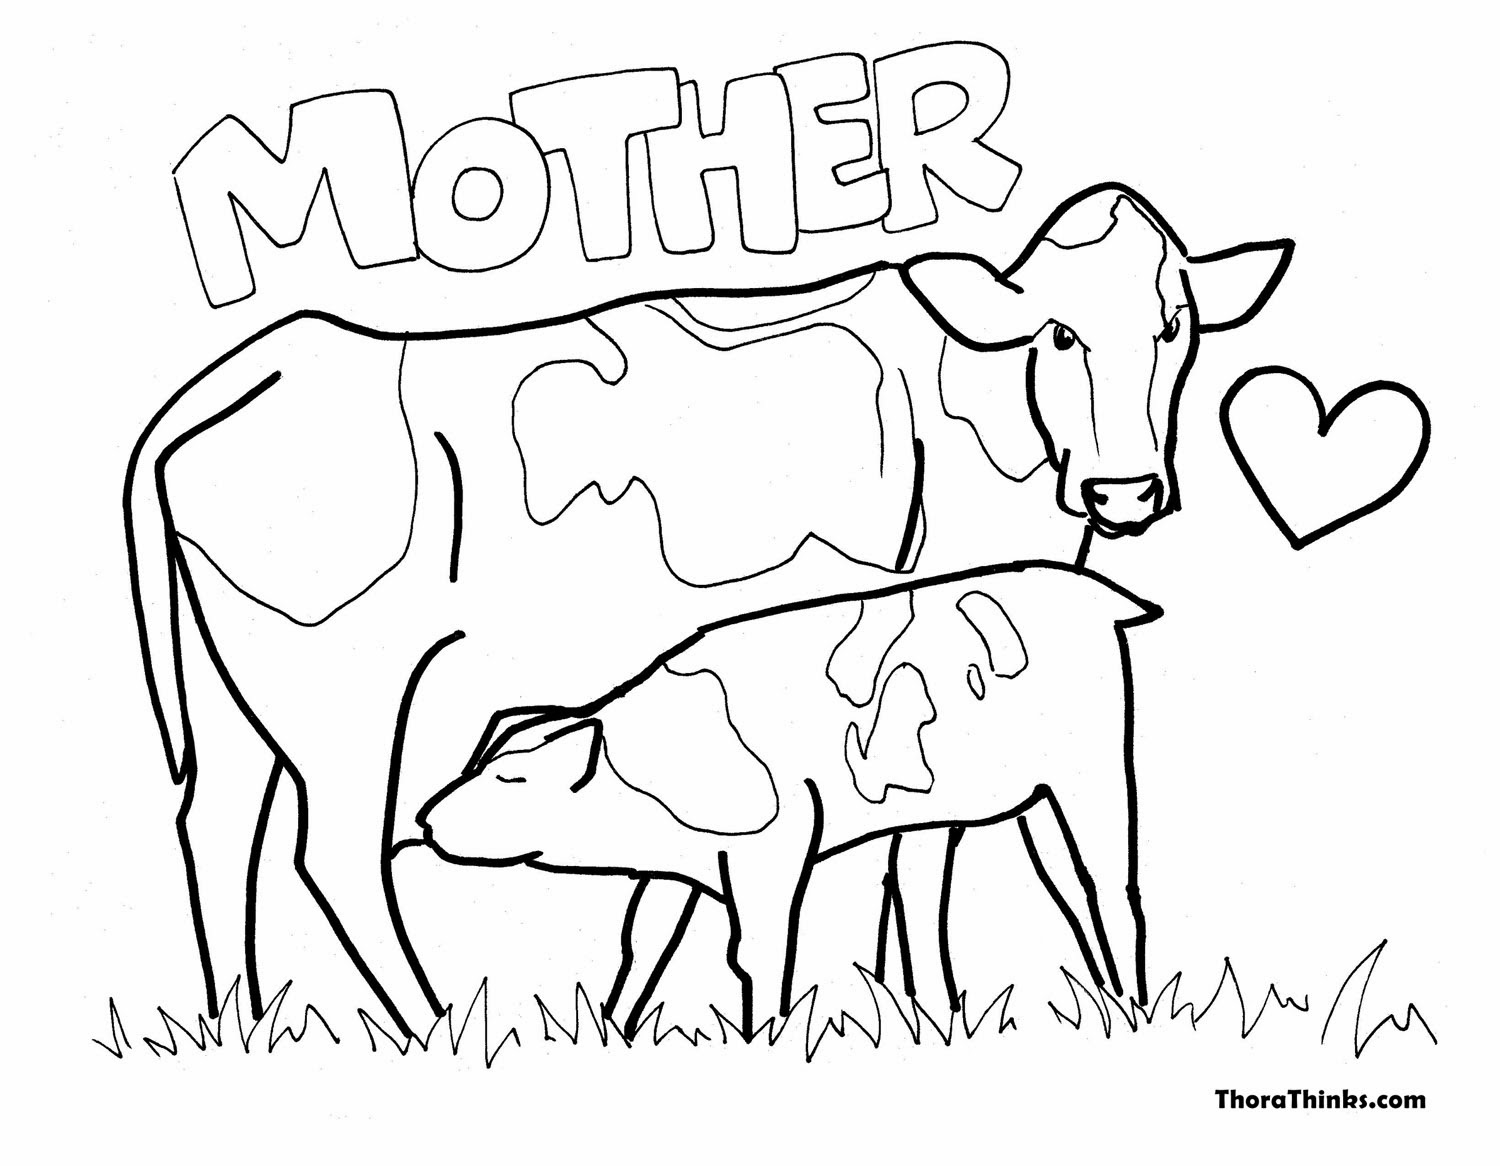 Coloring pages cow - Coloring Pages Cow 52